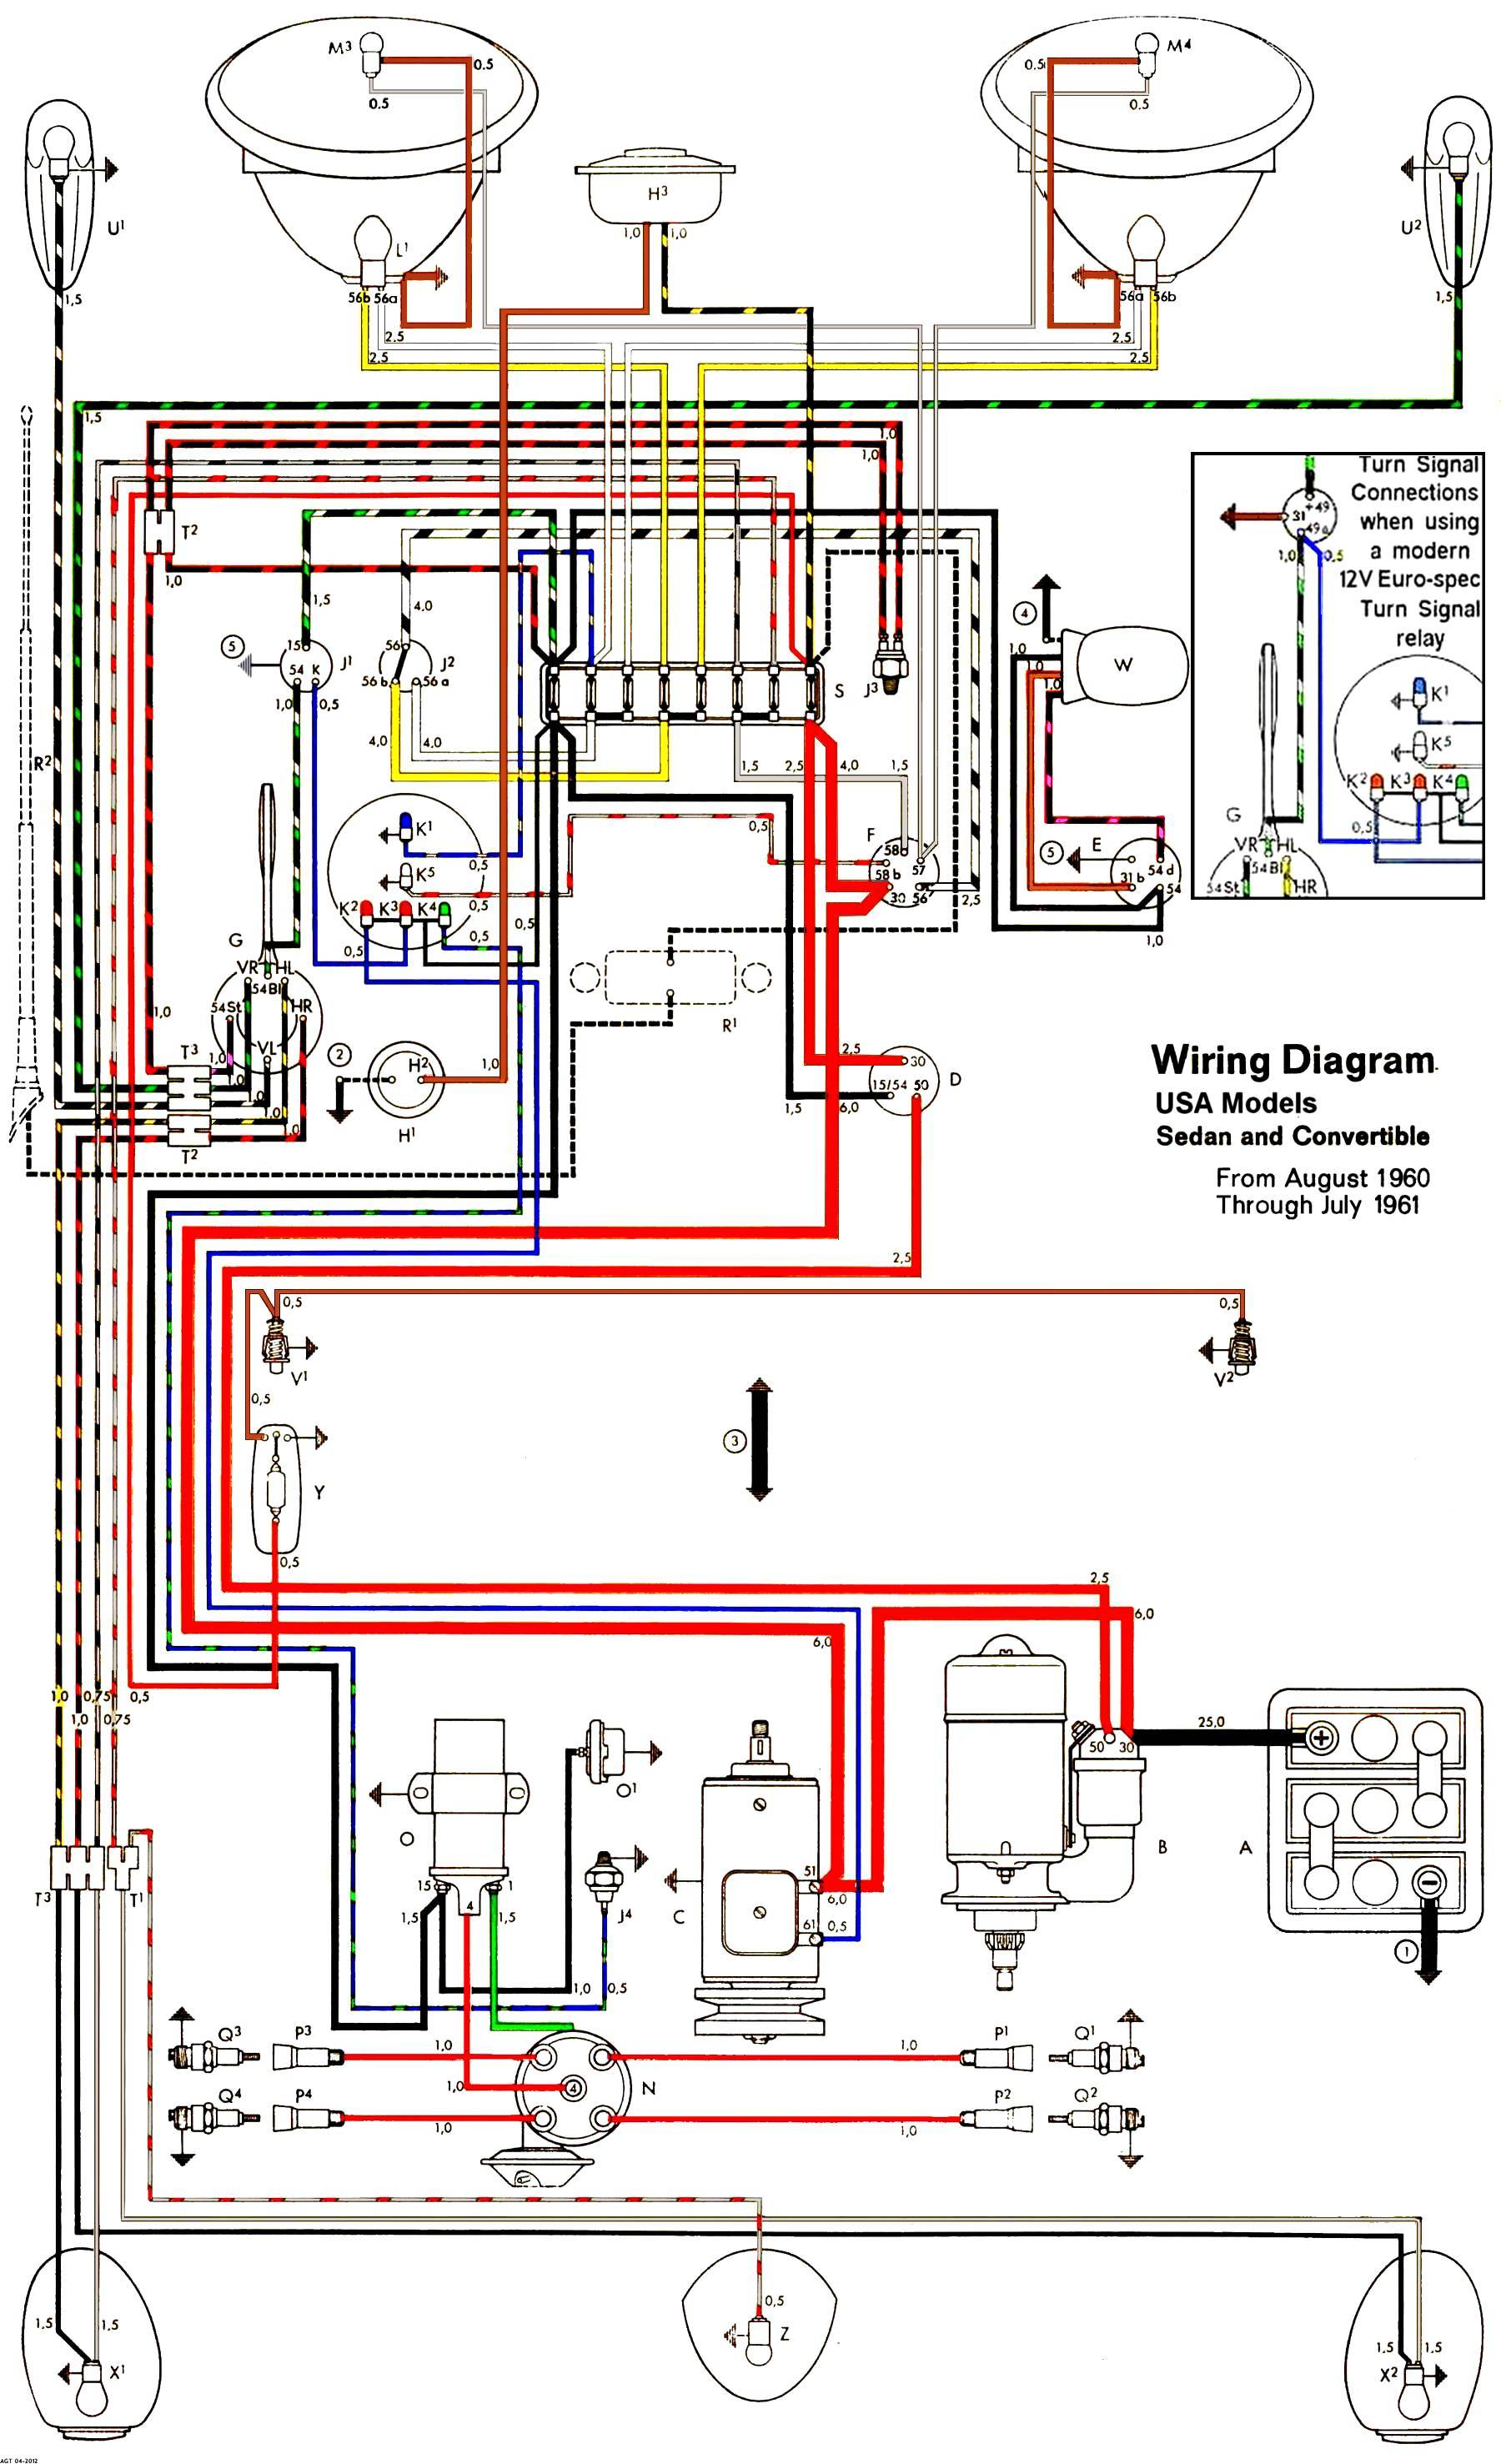 1972 Vw Bug Wiring Harness | Wiring Diagram  Vw Bug Wiring Harness on vw bug ignition system, vw bug electrical, vw bug flasher relay, vw bug solenoid, vw bug speaker, vw bug throttle cable, vw bug thermostat, vw beetle wiring, vw bug intercooler, vw bug wiring kit, vw bug oil temp sensor, vw bug lights, vw wiring harness kits, vw bug exhaust gasket, vw bug steering coupler, vw bug serpentine belt, vw bug spark plugs, vw bug intake, vw trike wiring harness, vw bug charging system,